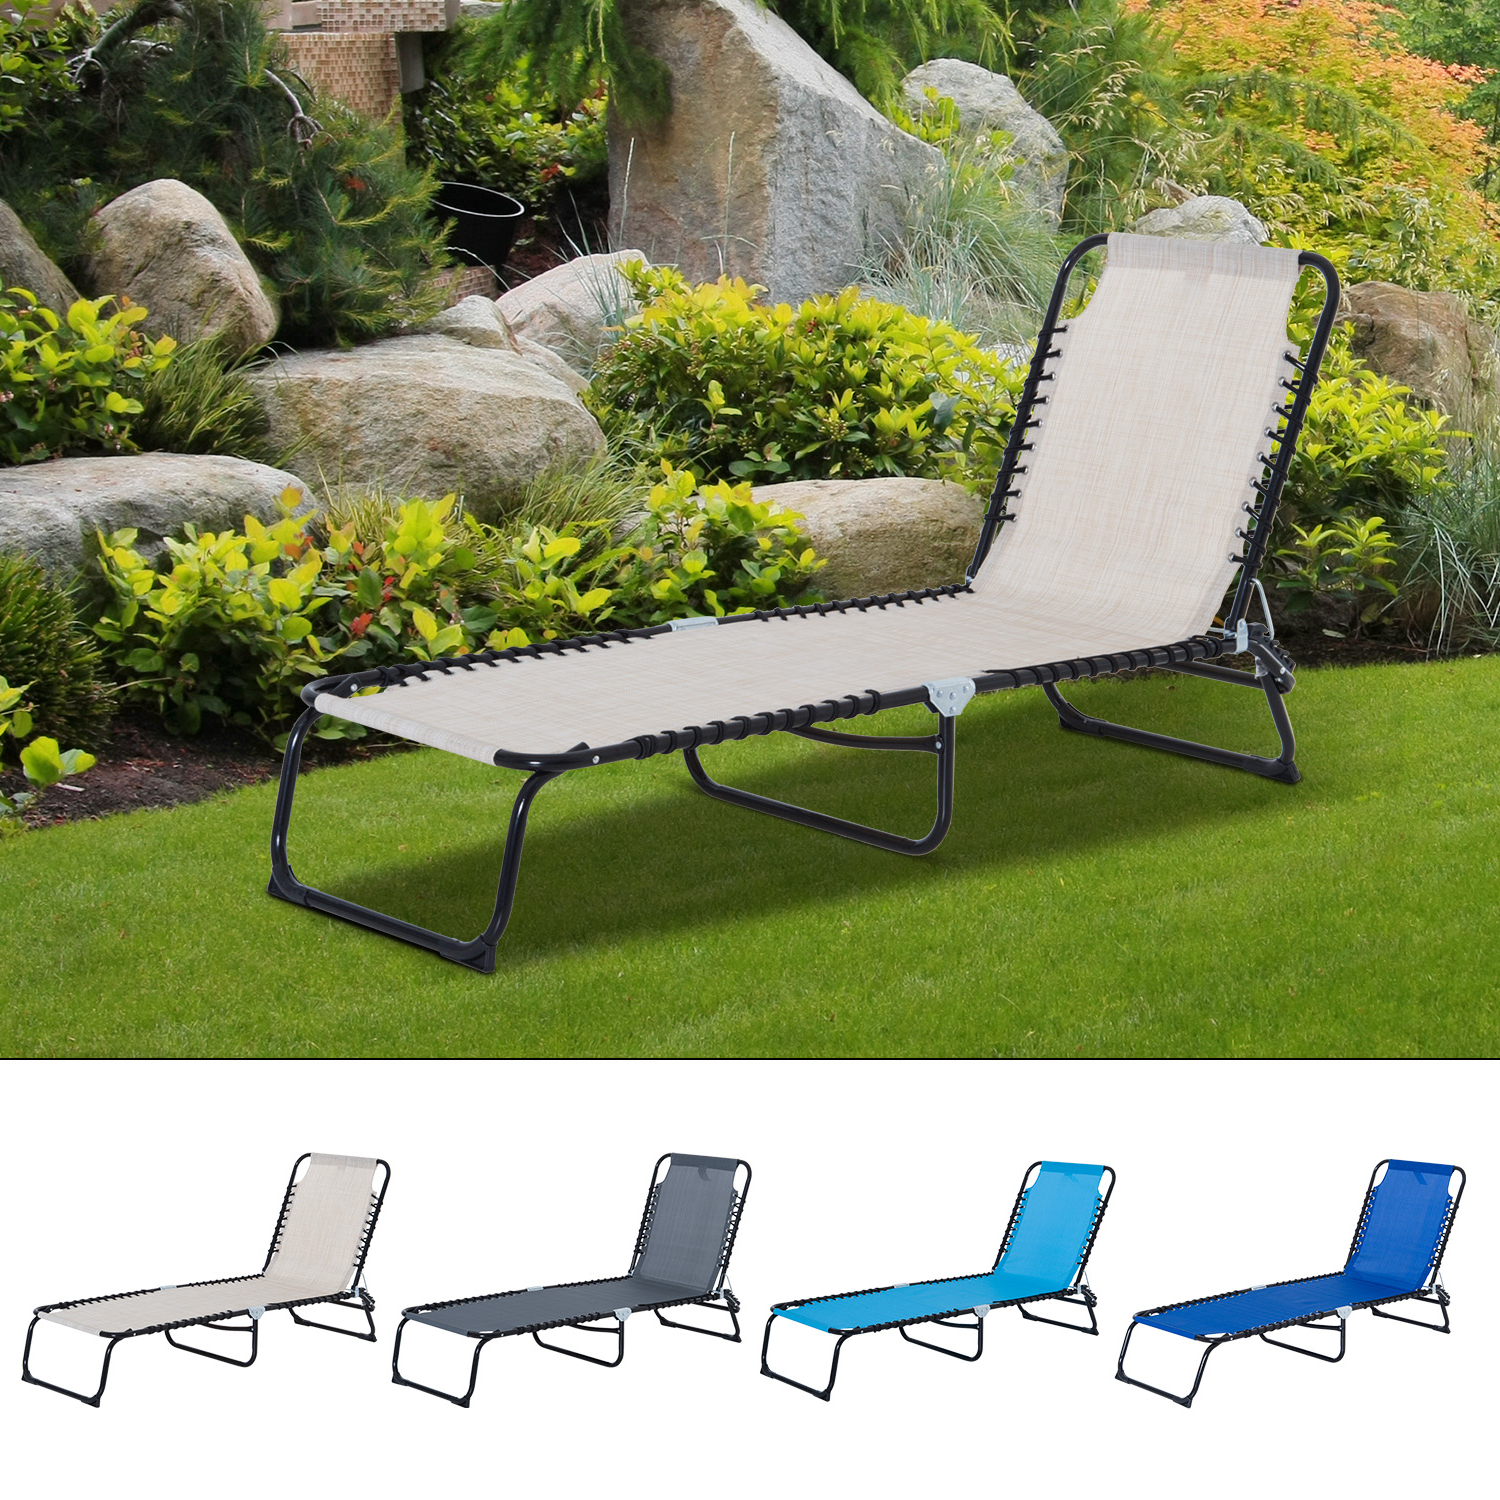 Most Up To Date Details About 3 Position Portable Reclining Beach Chaise Lounge Adjustable  Sleeping Bed Inside 3 Position Portable Folding Reclining Beach Chaise Lounges (View 4 of 25)